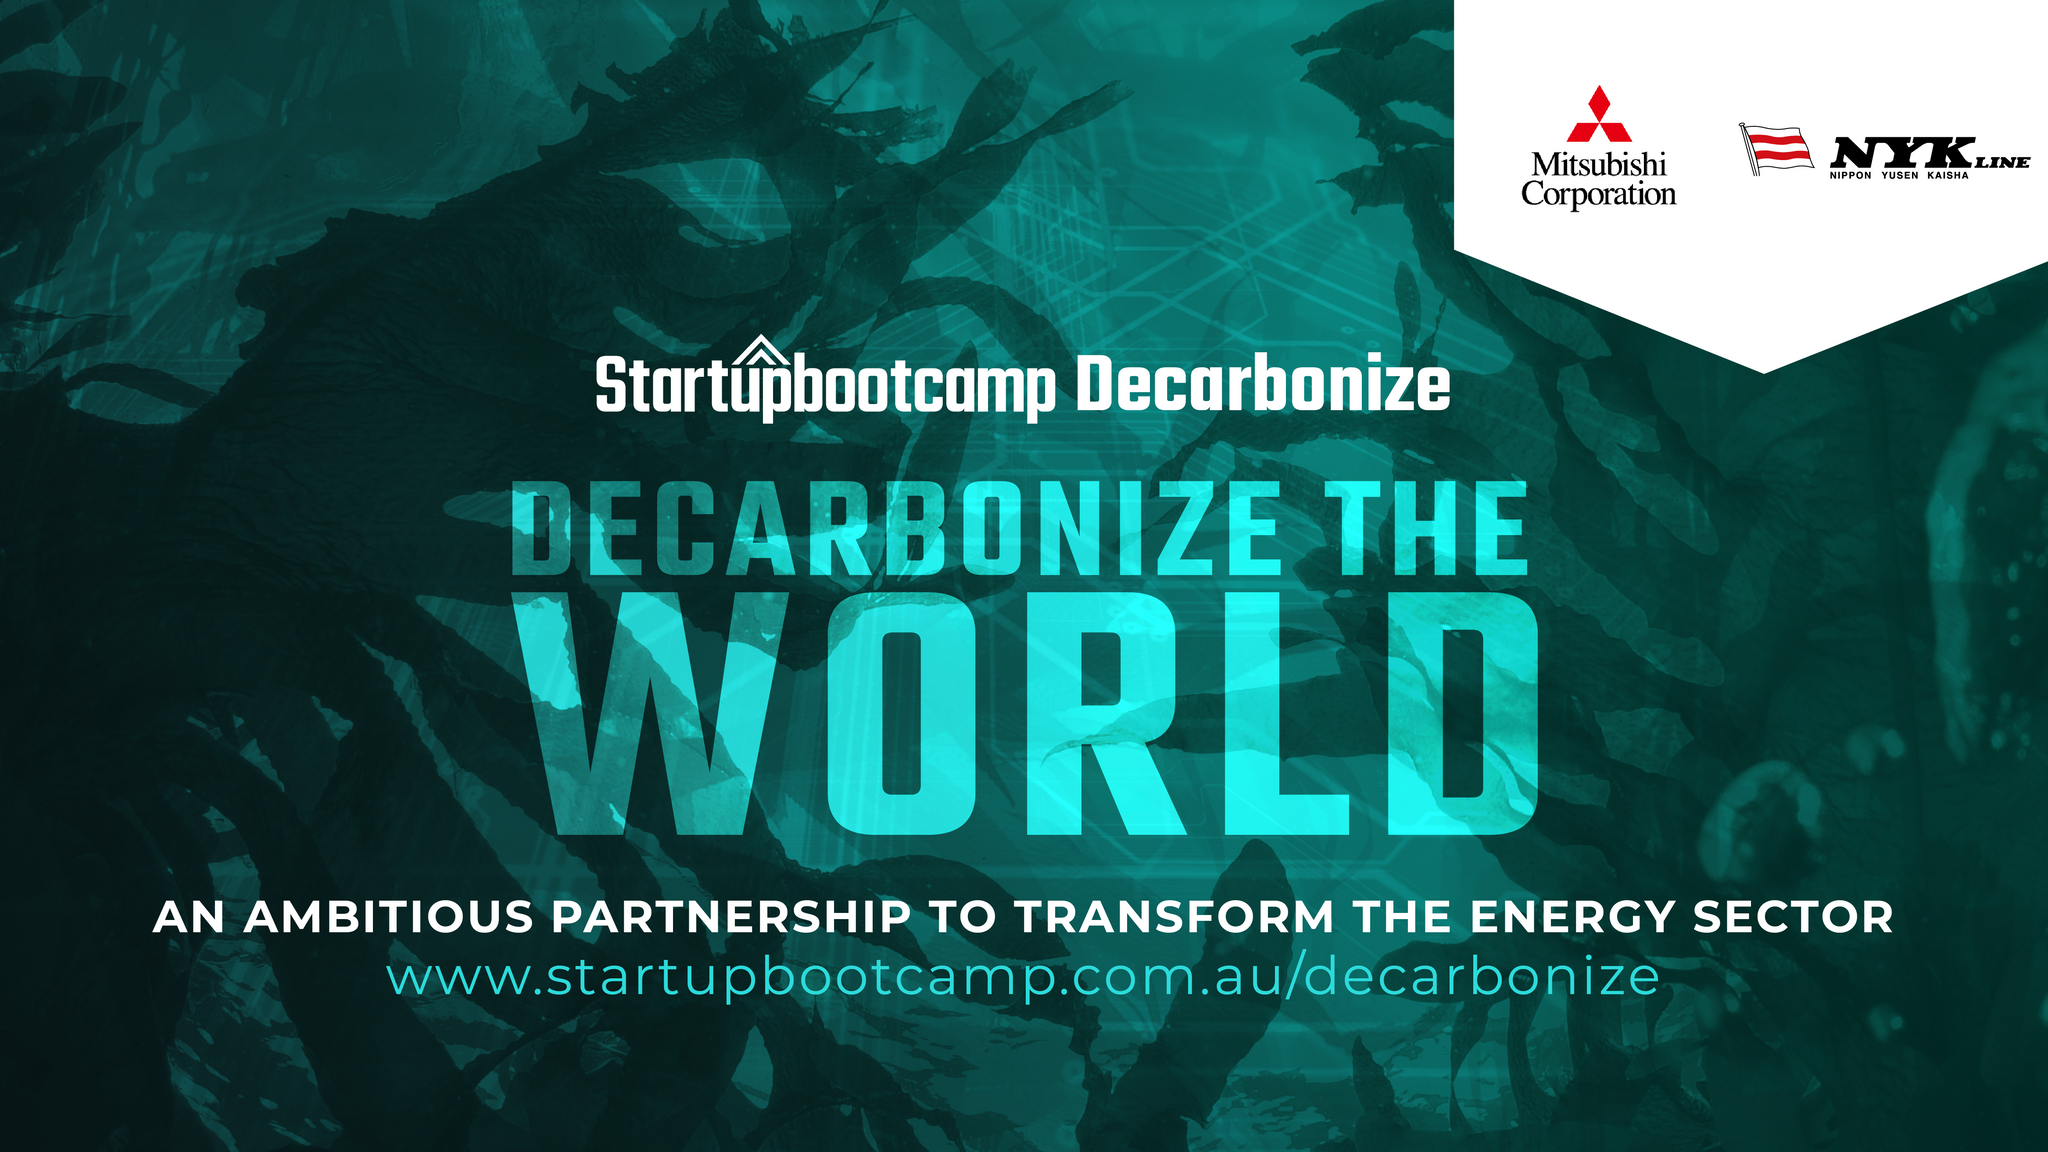 Startupbootcamp Decarbonize: An Ambitious Partnership to Transform the Energy Sector